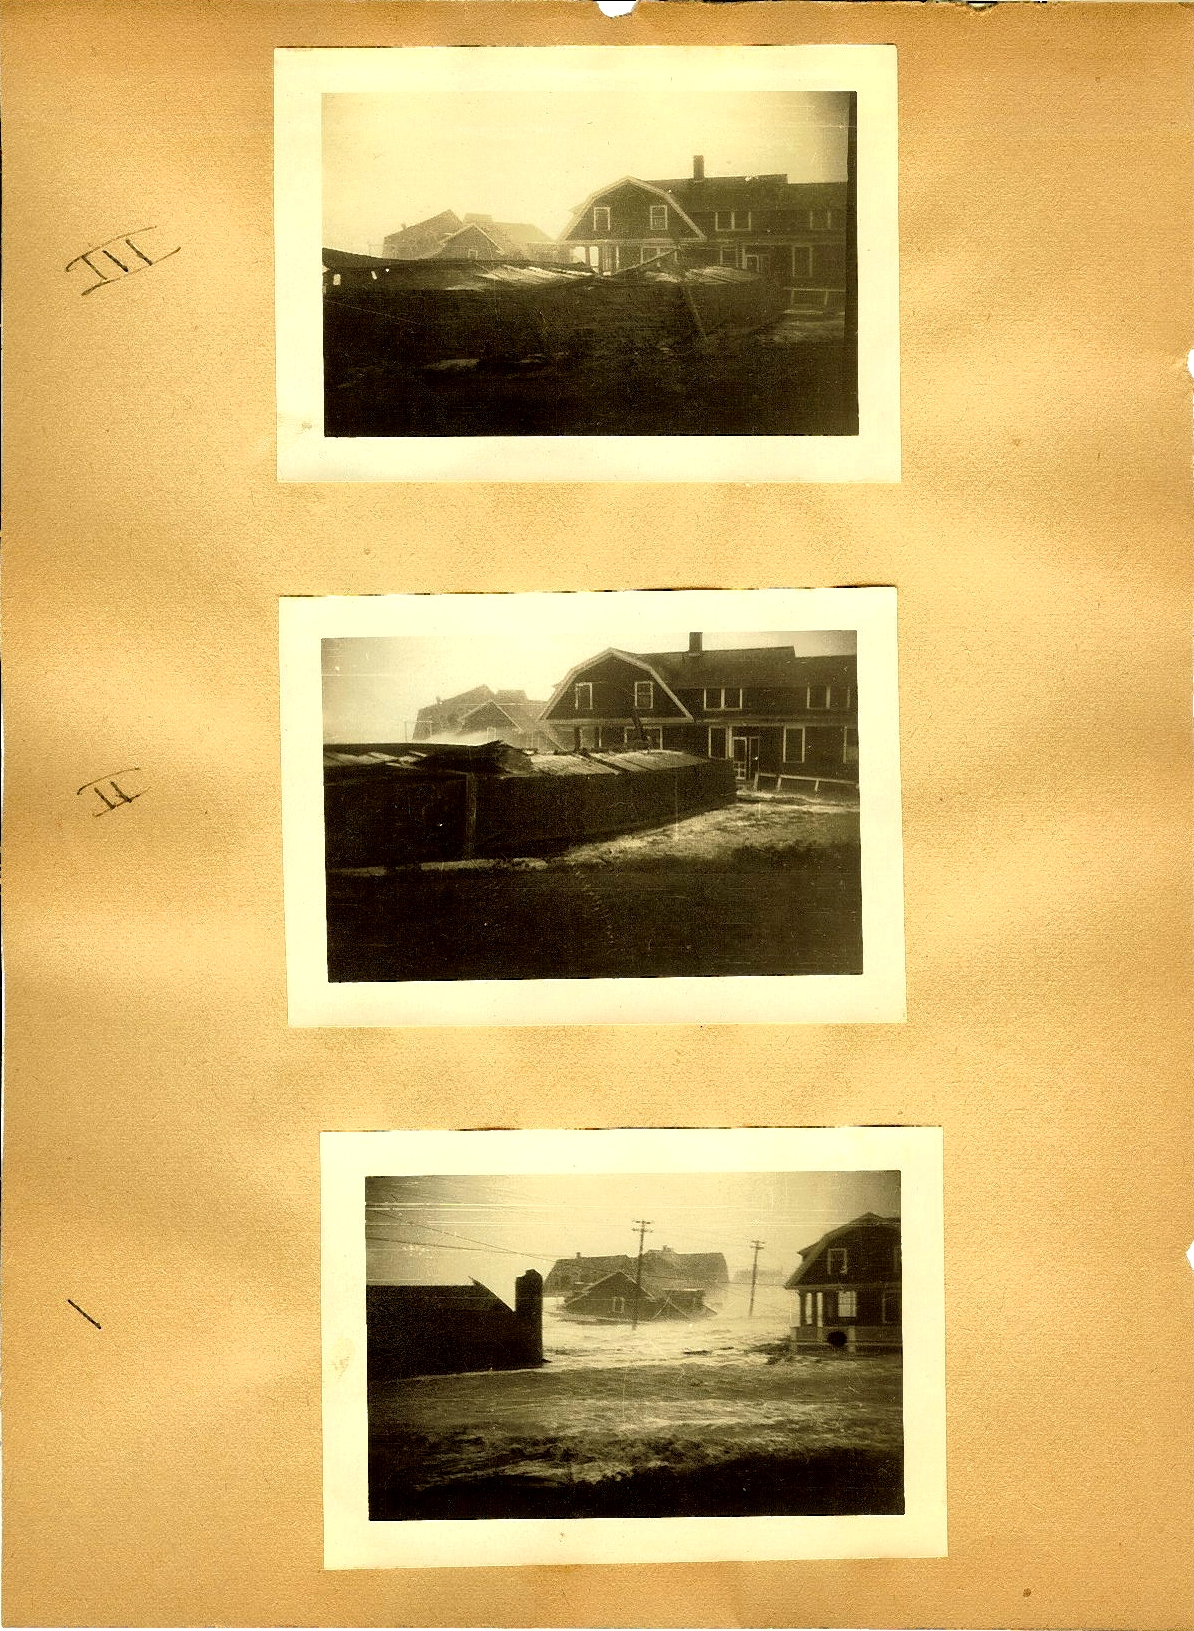 The 1938 Hurricane photos p11